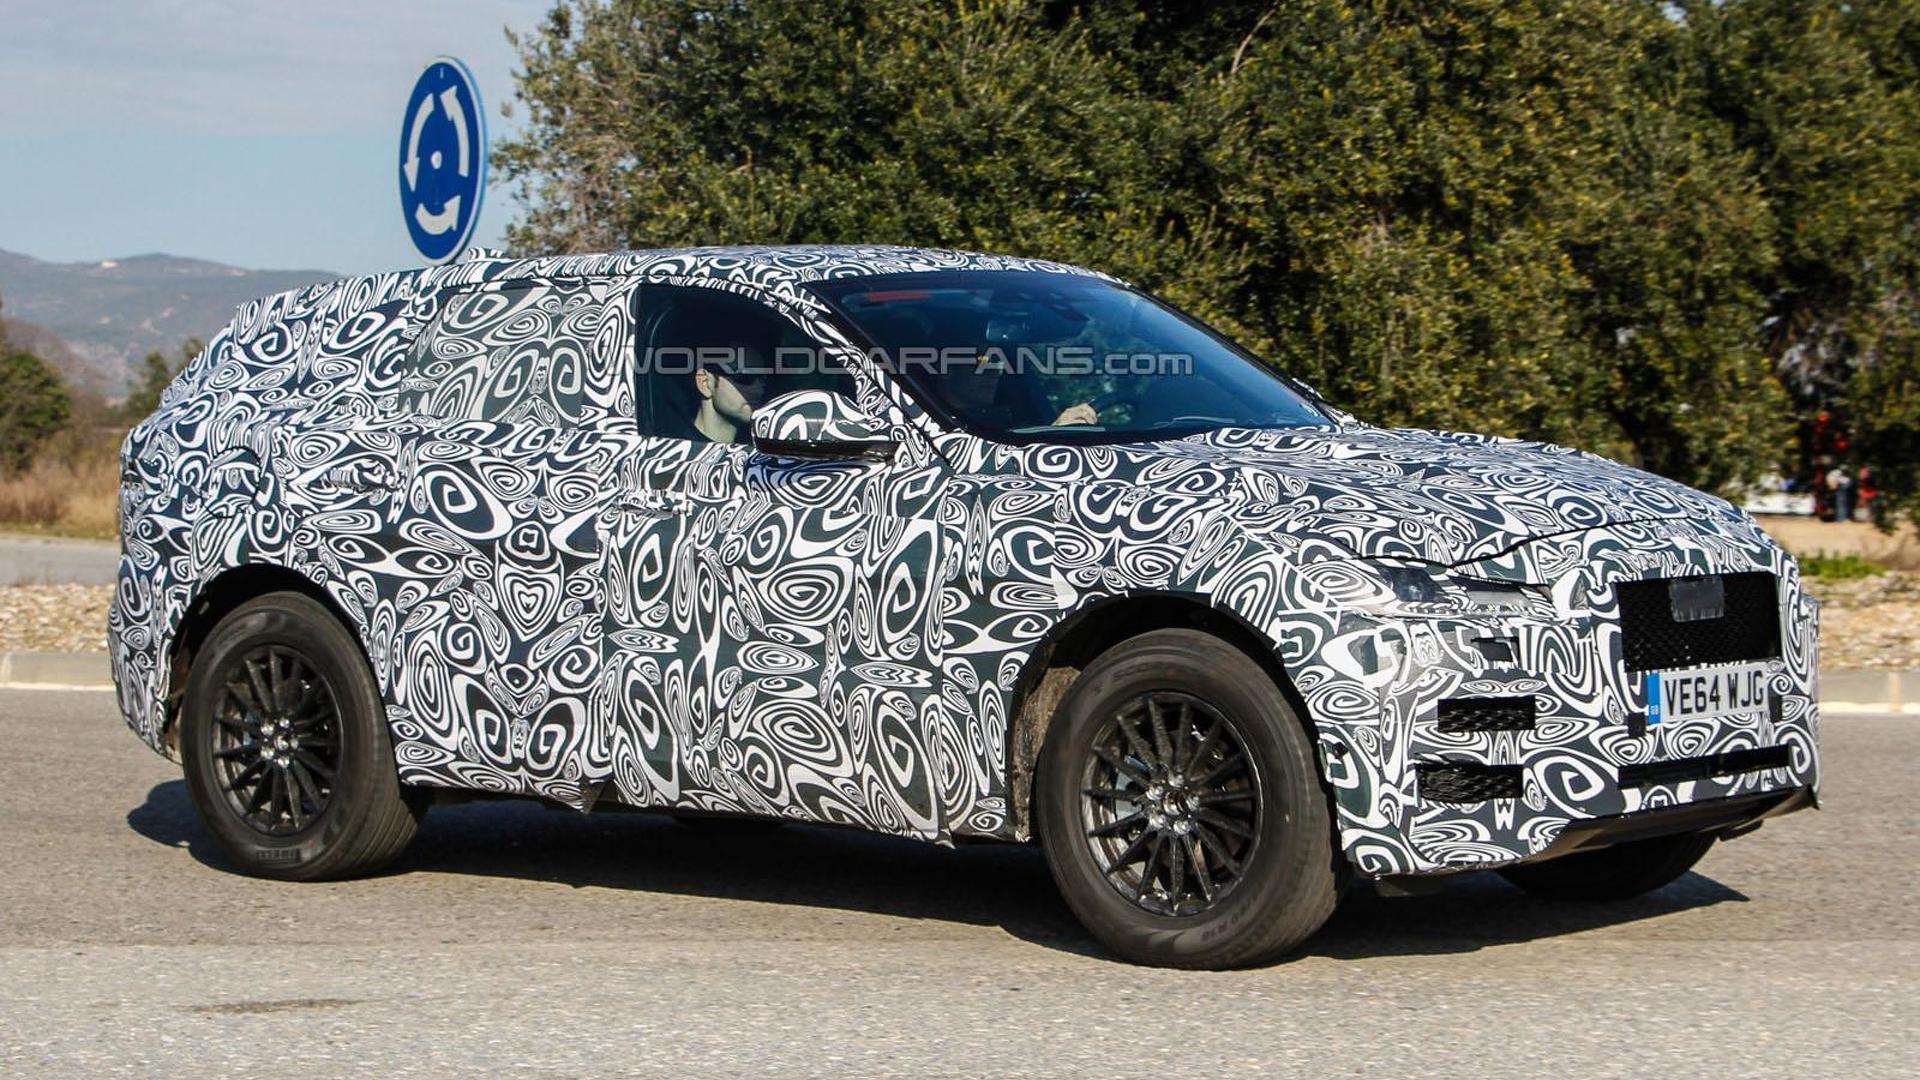 Jaguar F-Pace spied for the first time wearing a production body